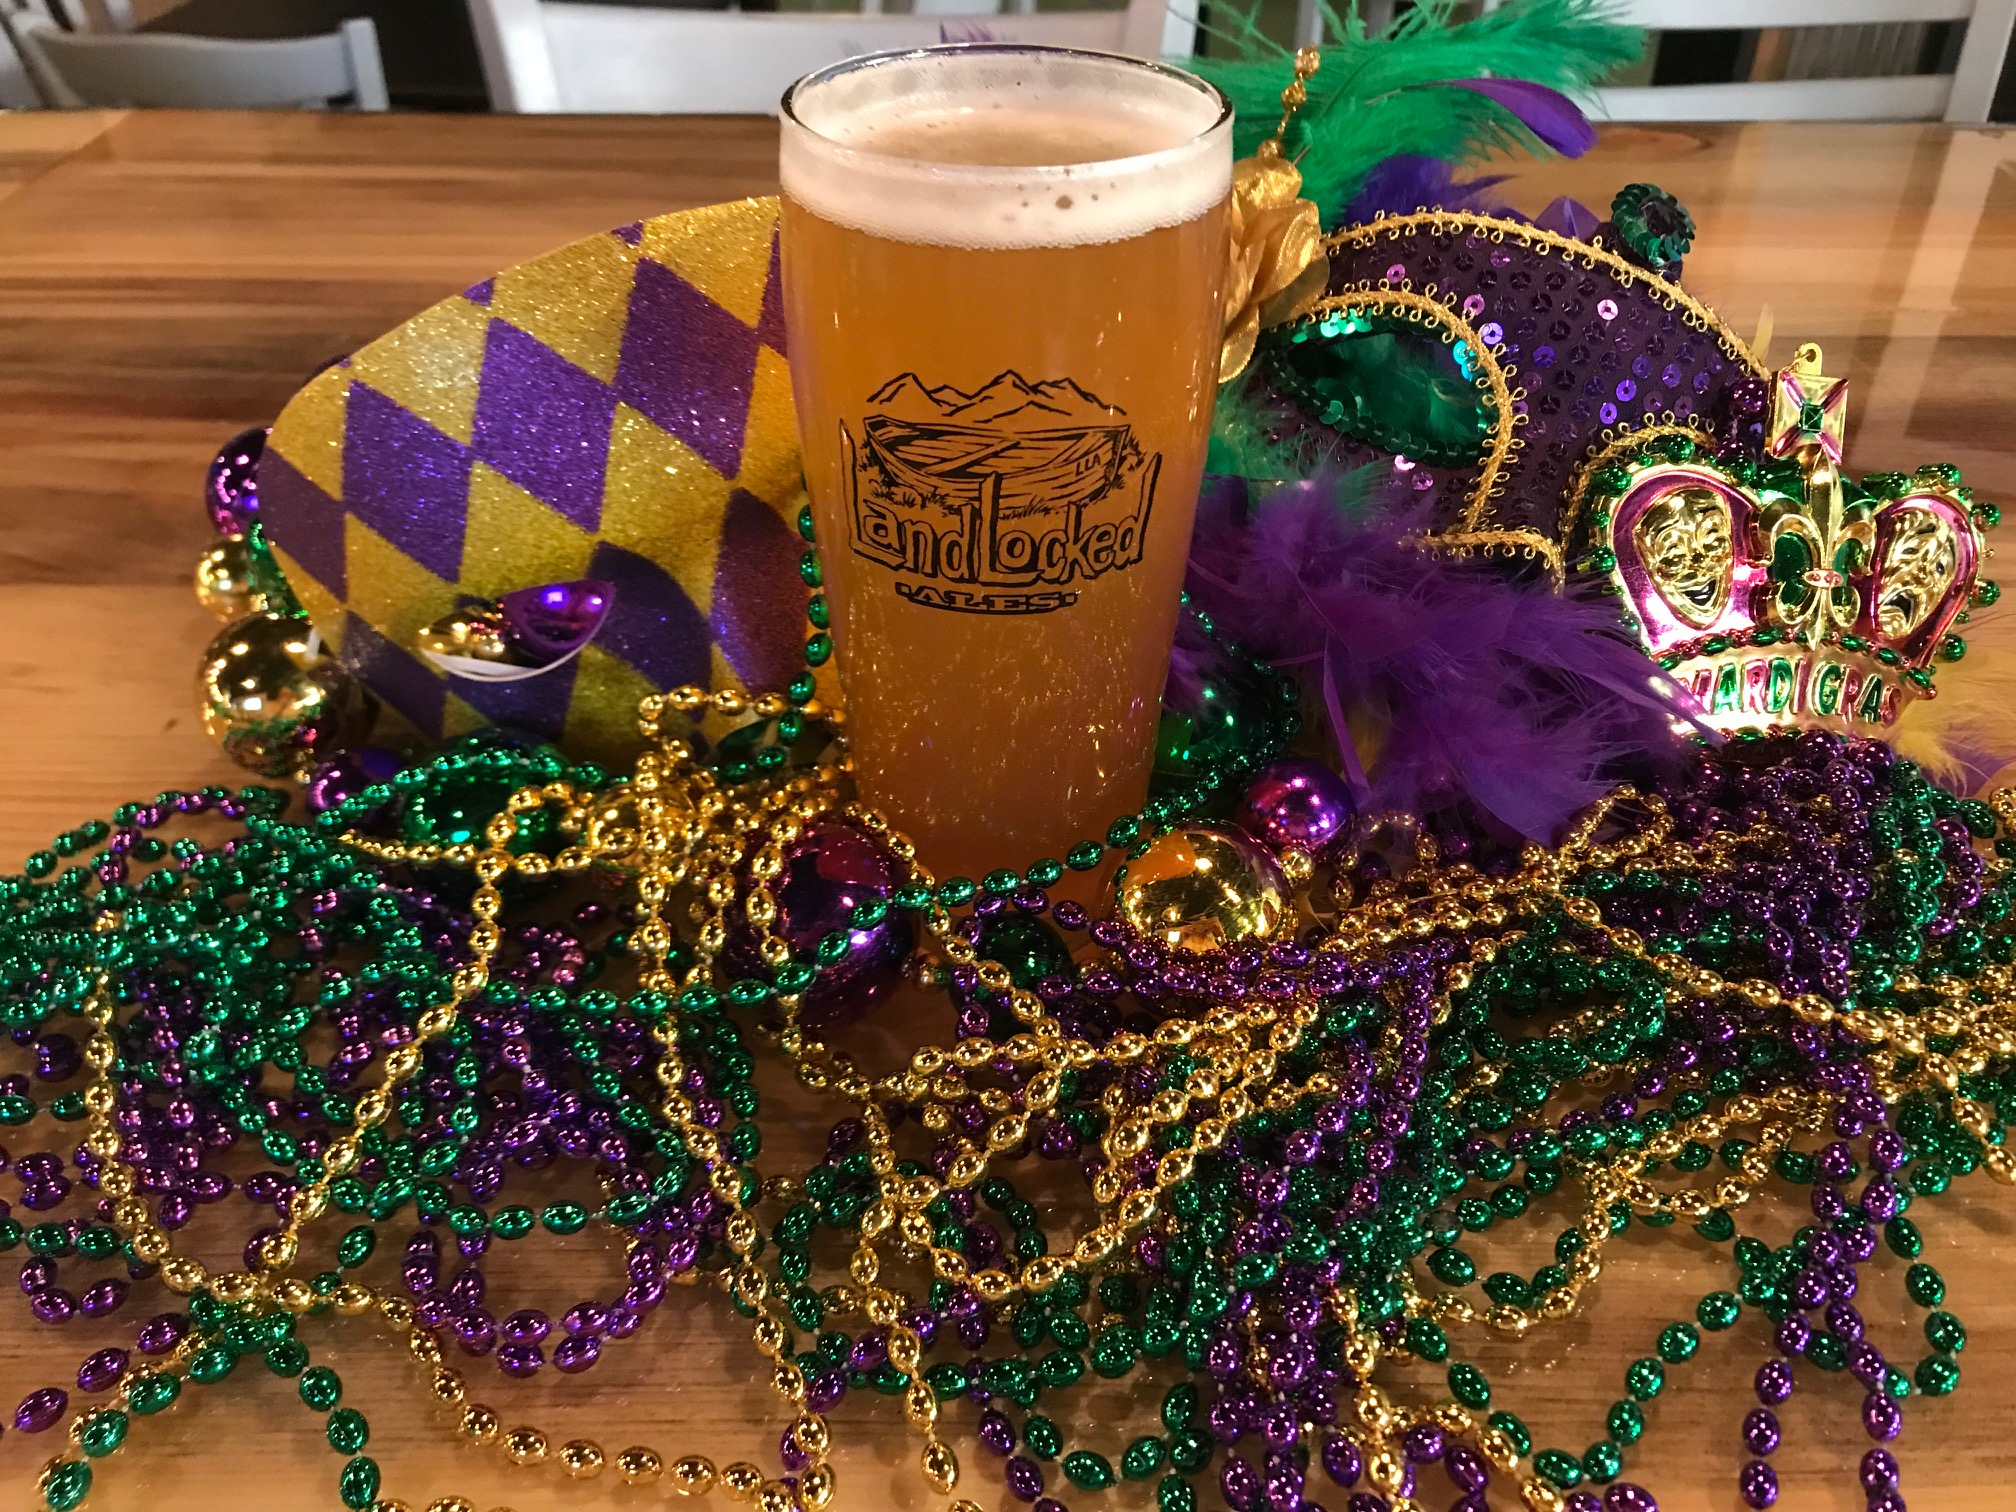 CRAWFISH BOIL - Let's party with Mardi Gras!